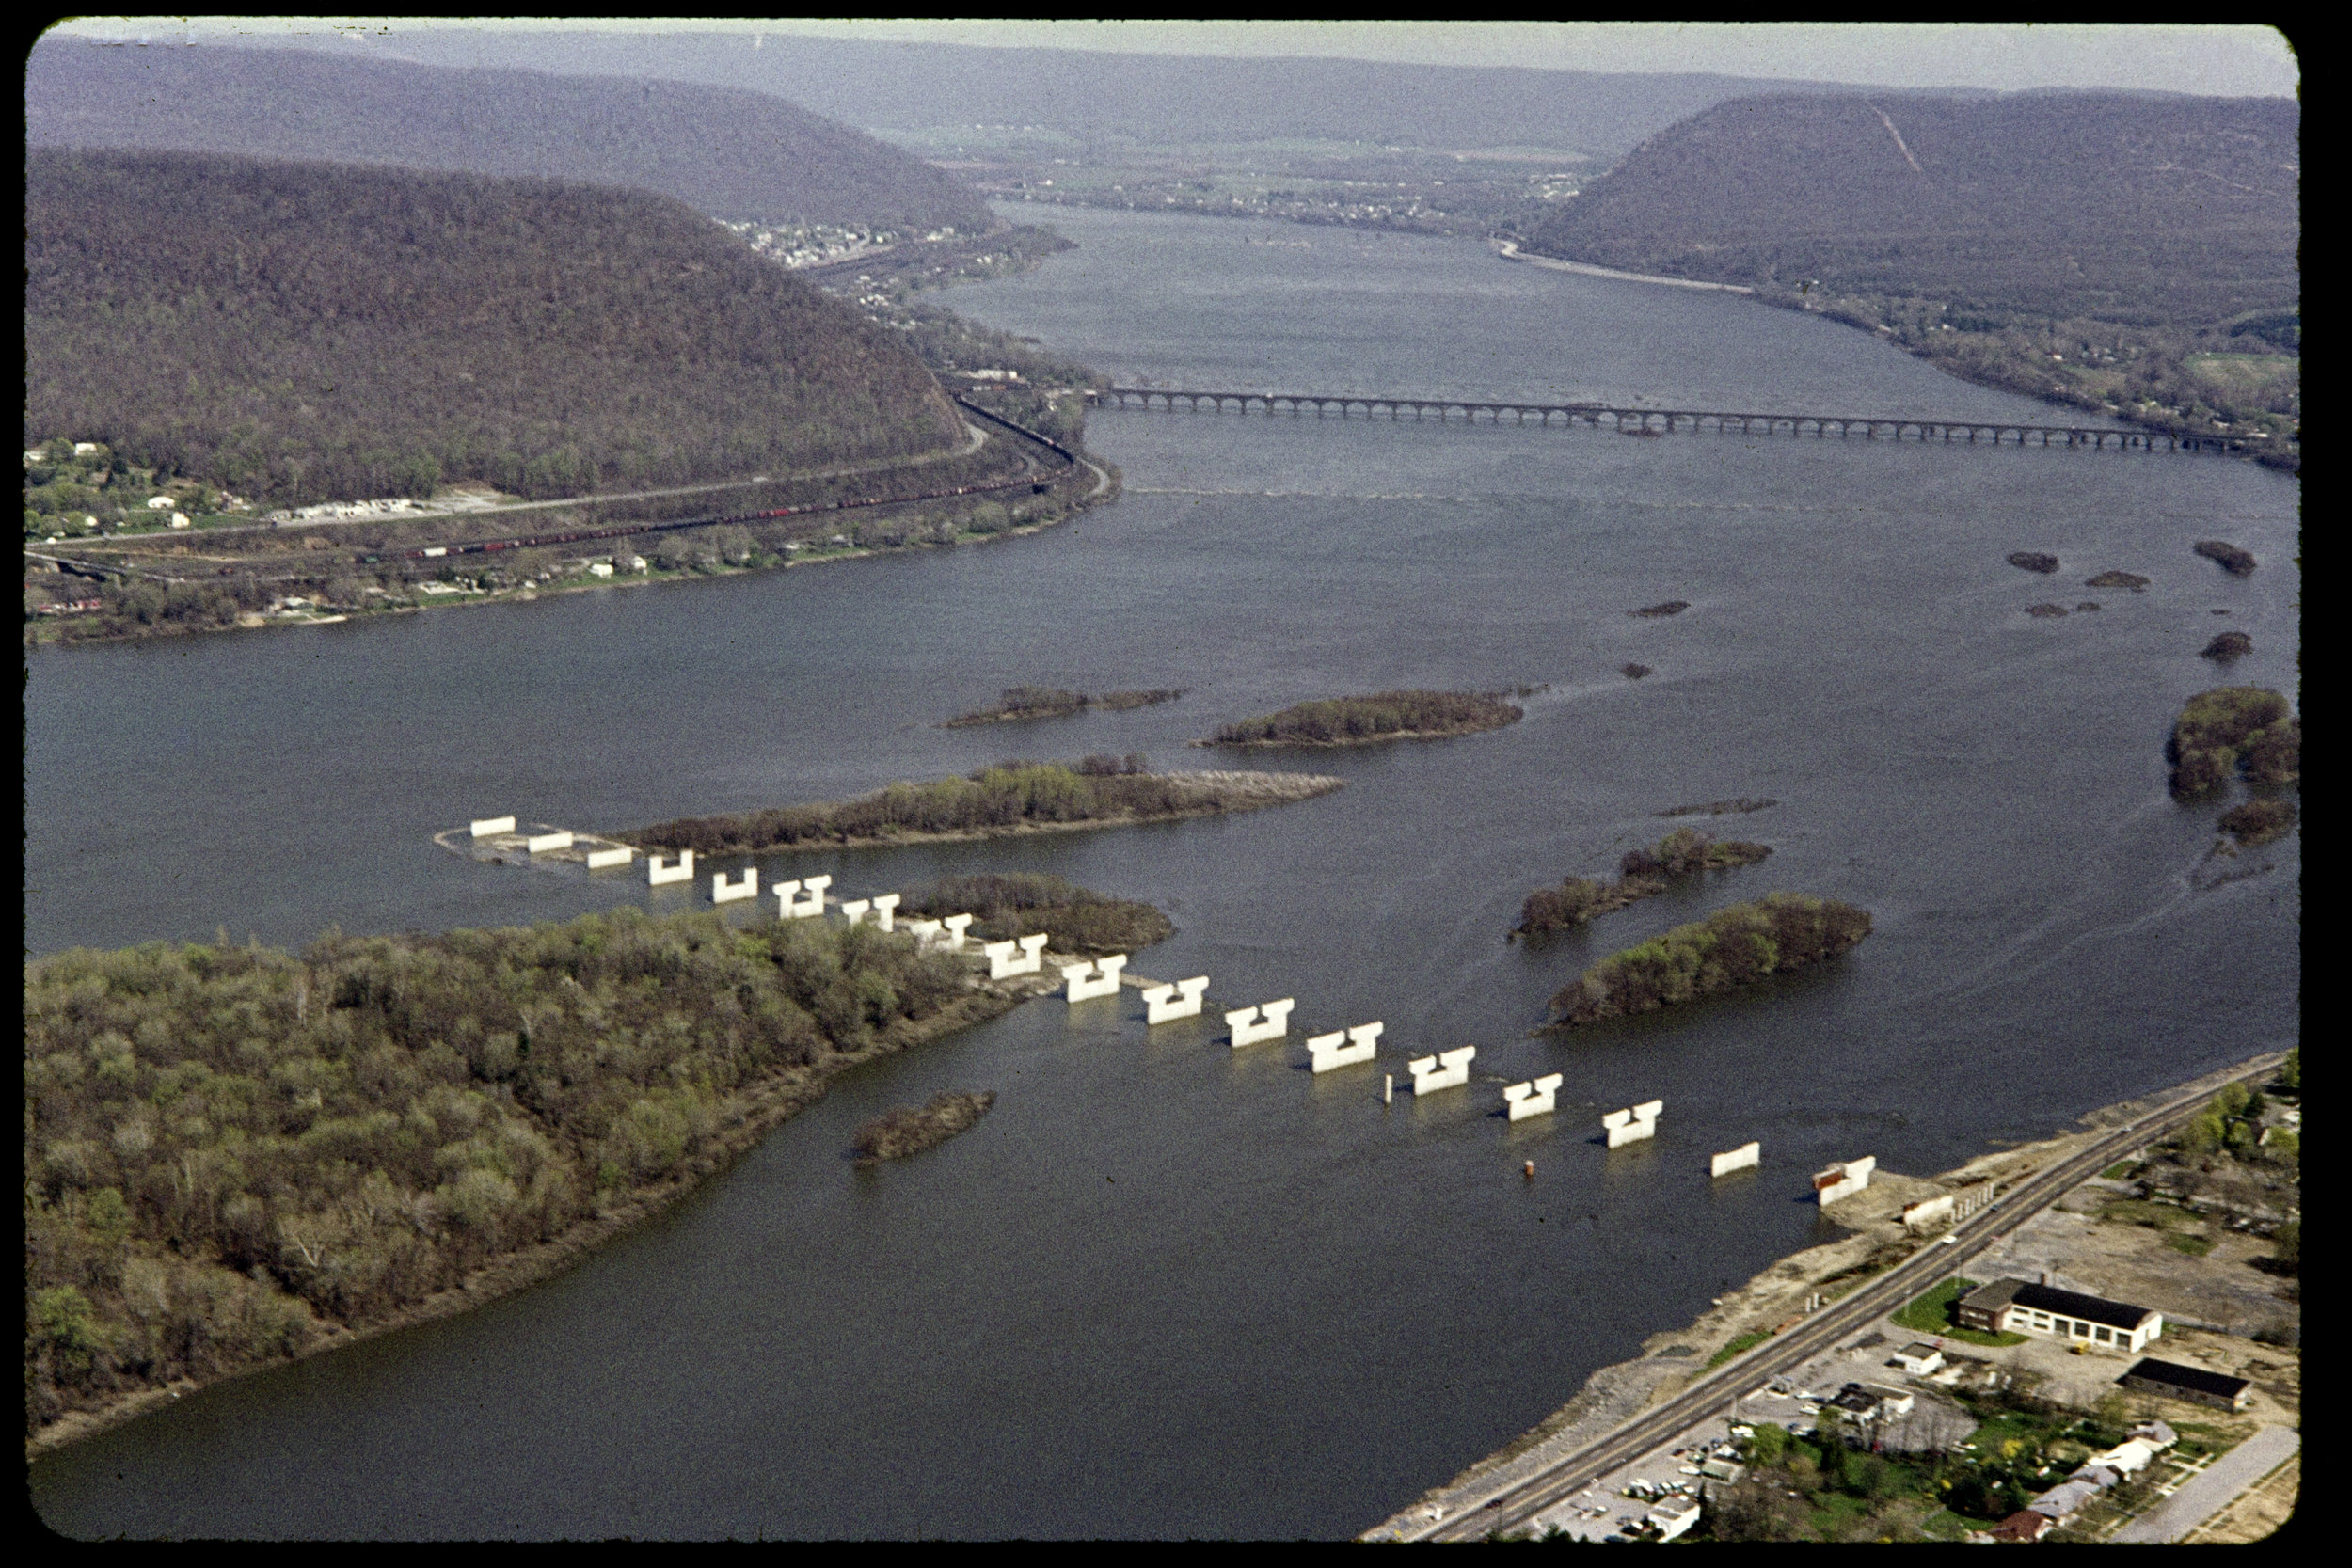 Route_81_Bridge_Piers_East_Shore_01.jpg